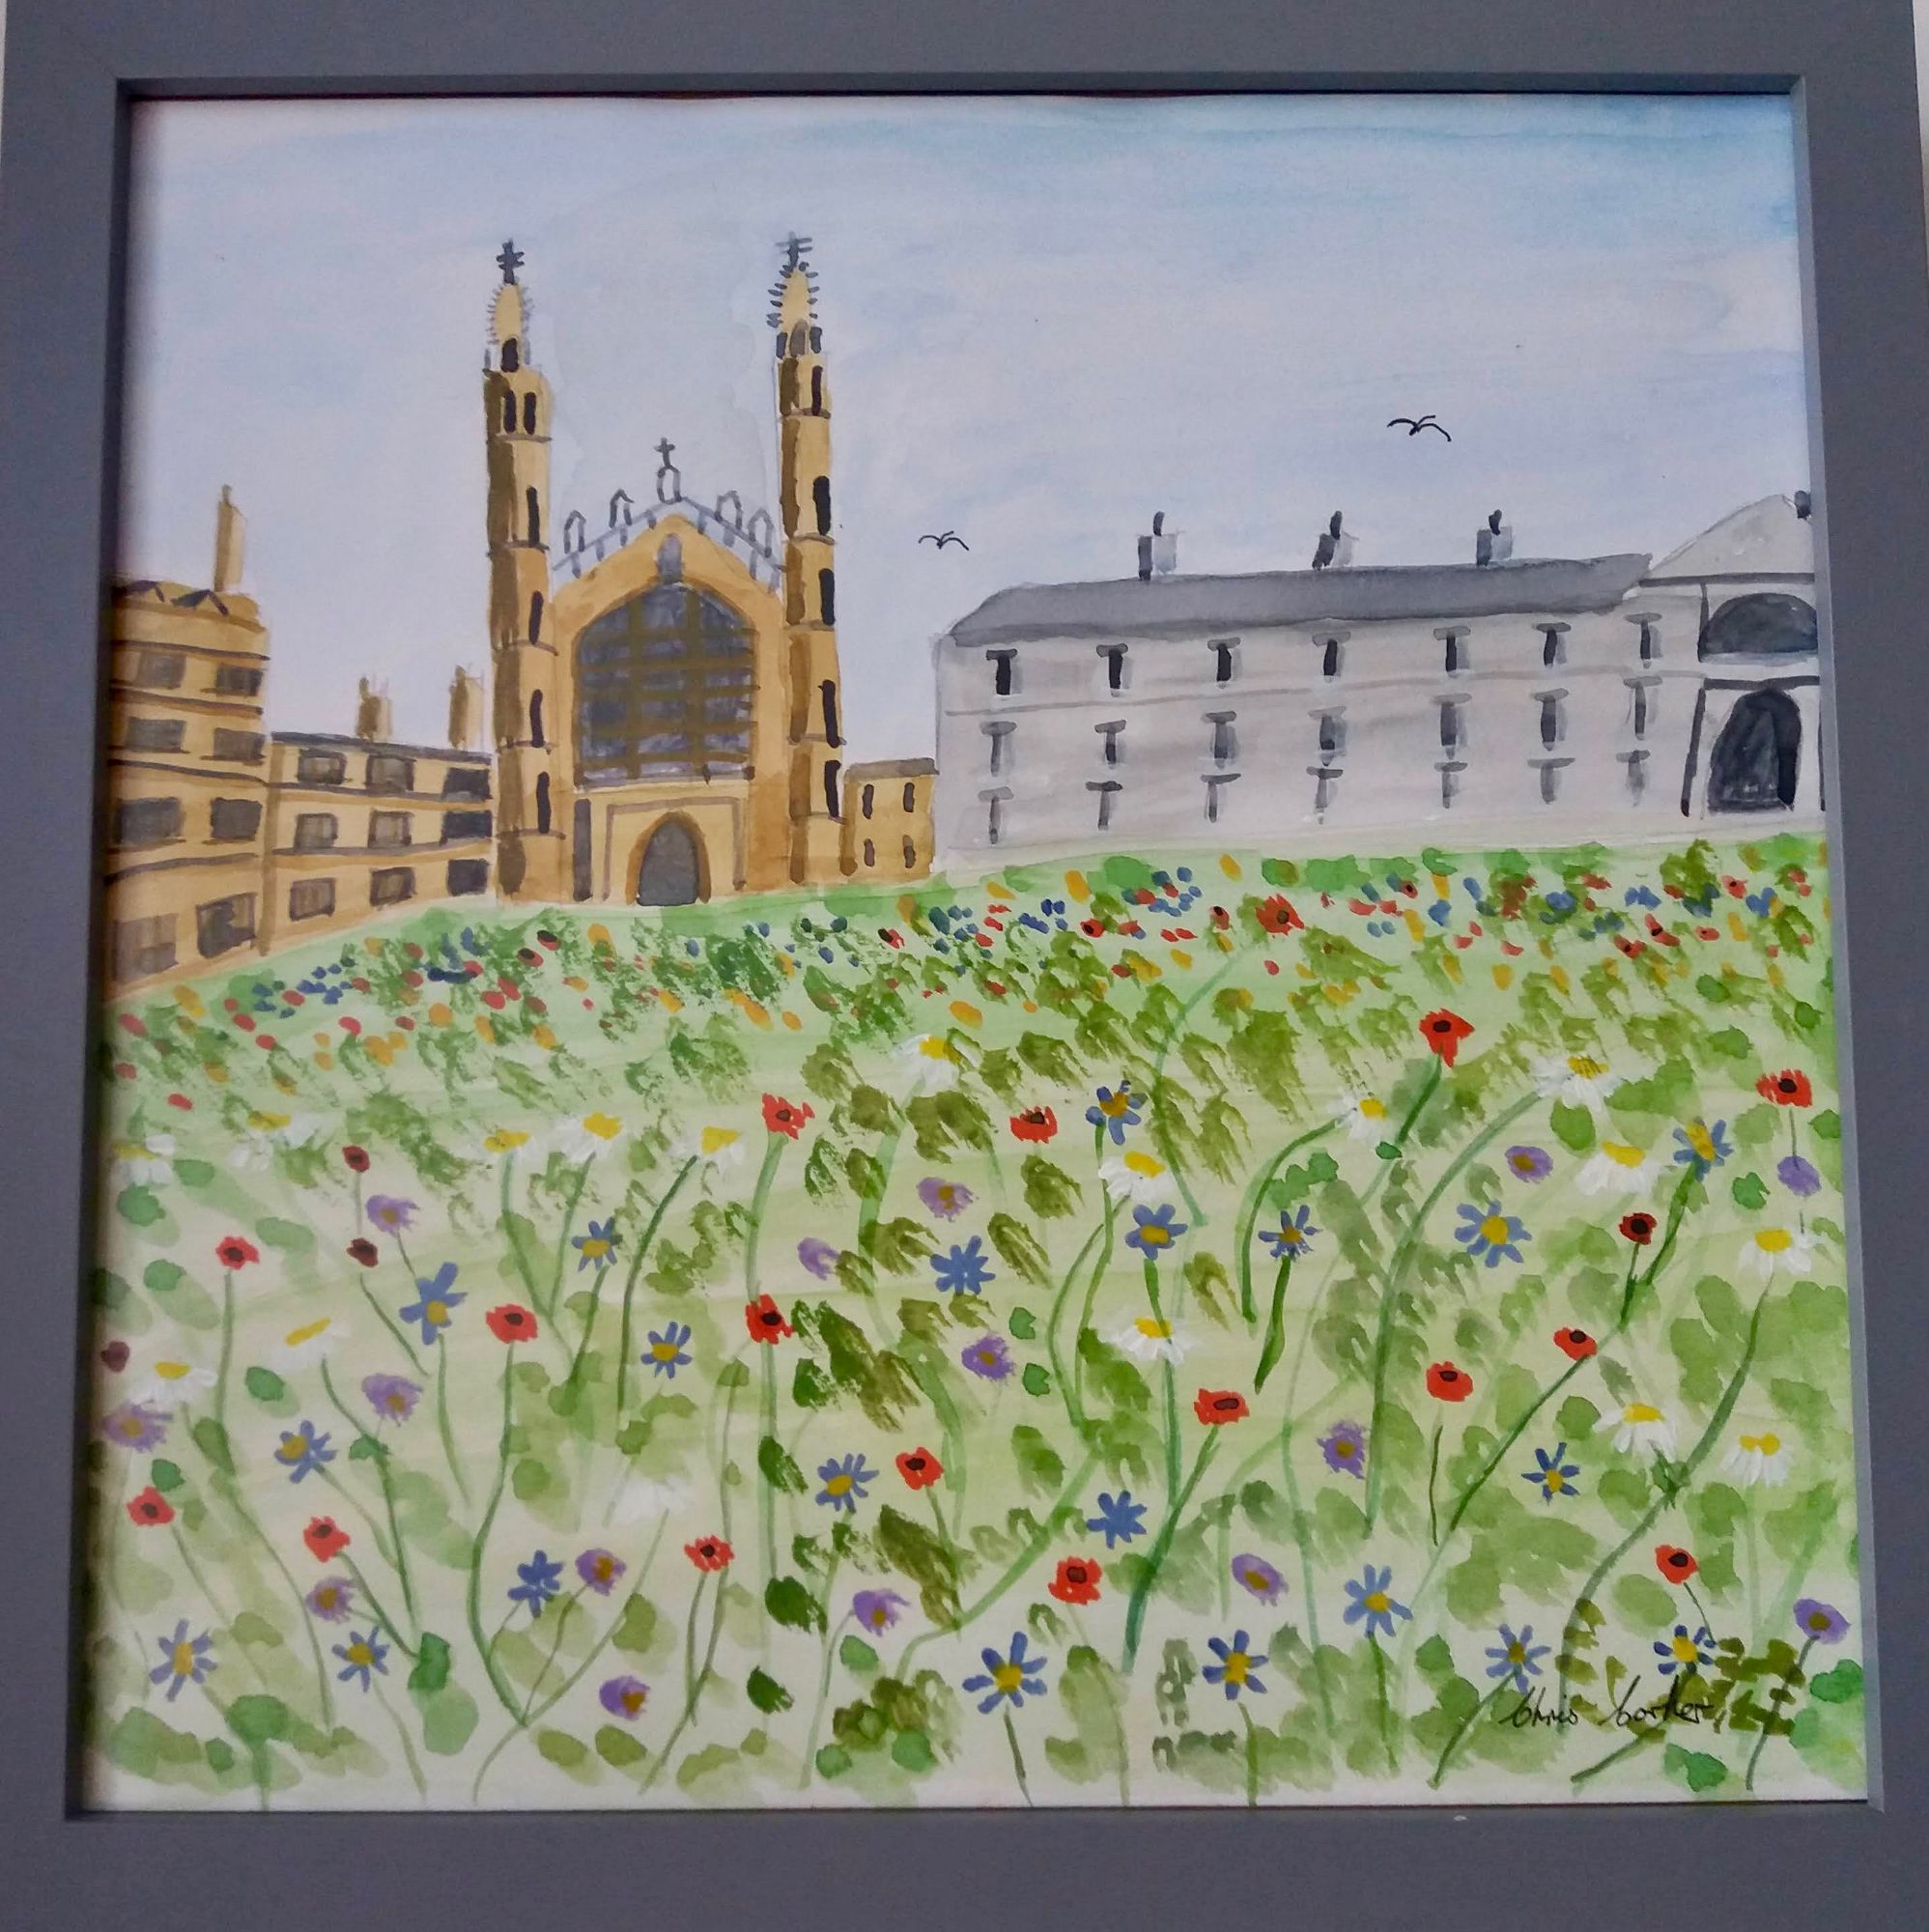 King's College Wildflower Meadow ________________________________ watercolour, grey frame  (34cm x 34cm)           £25